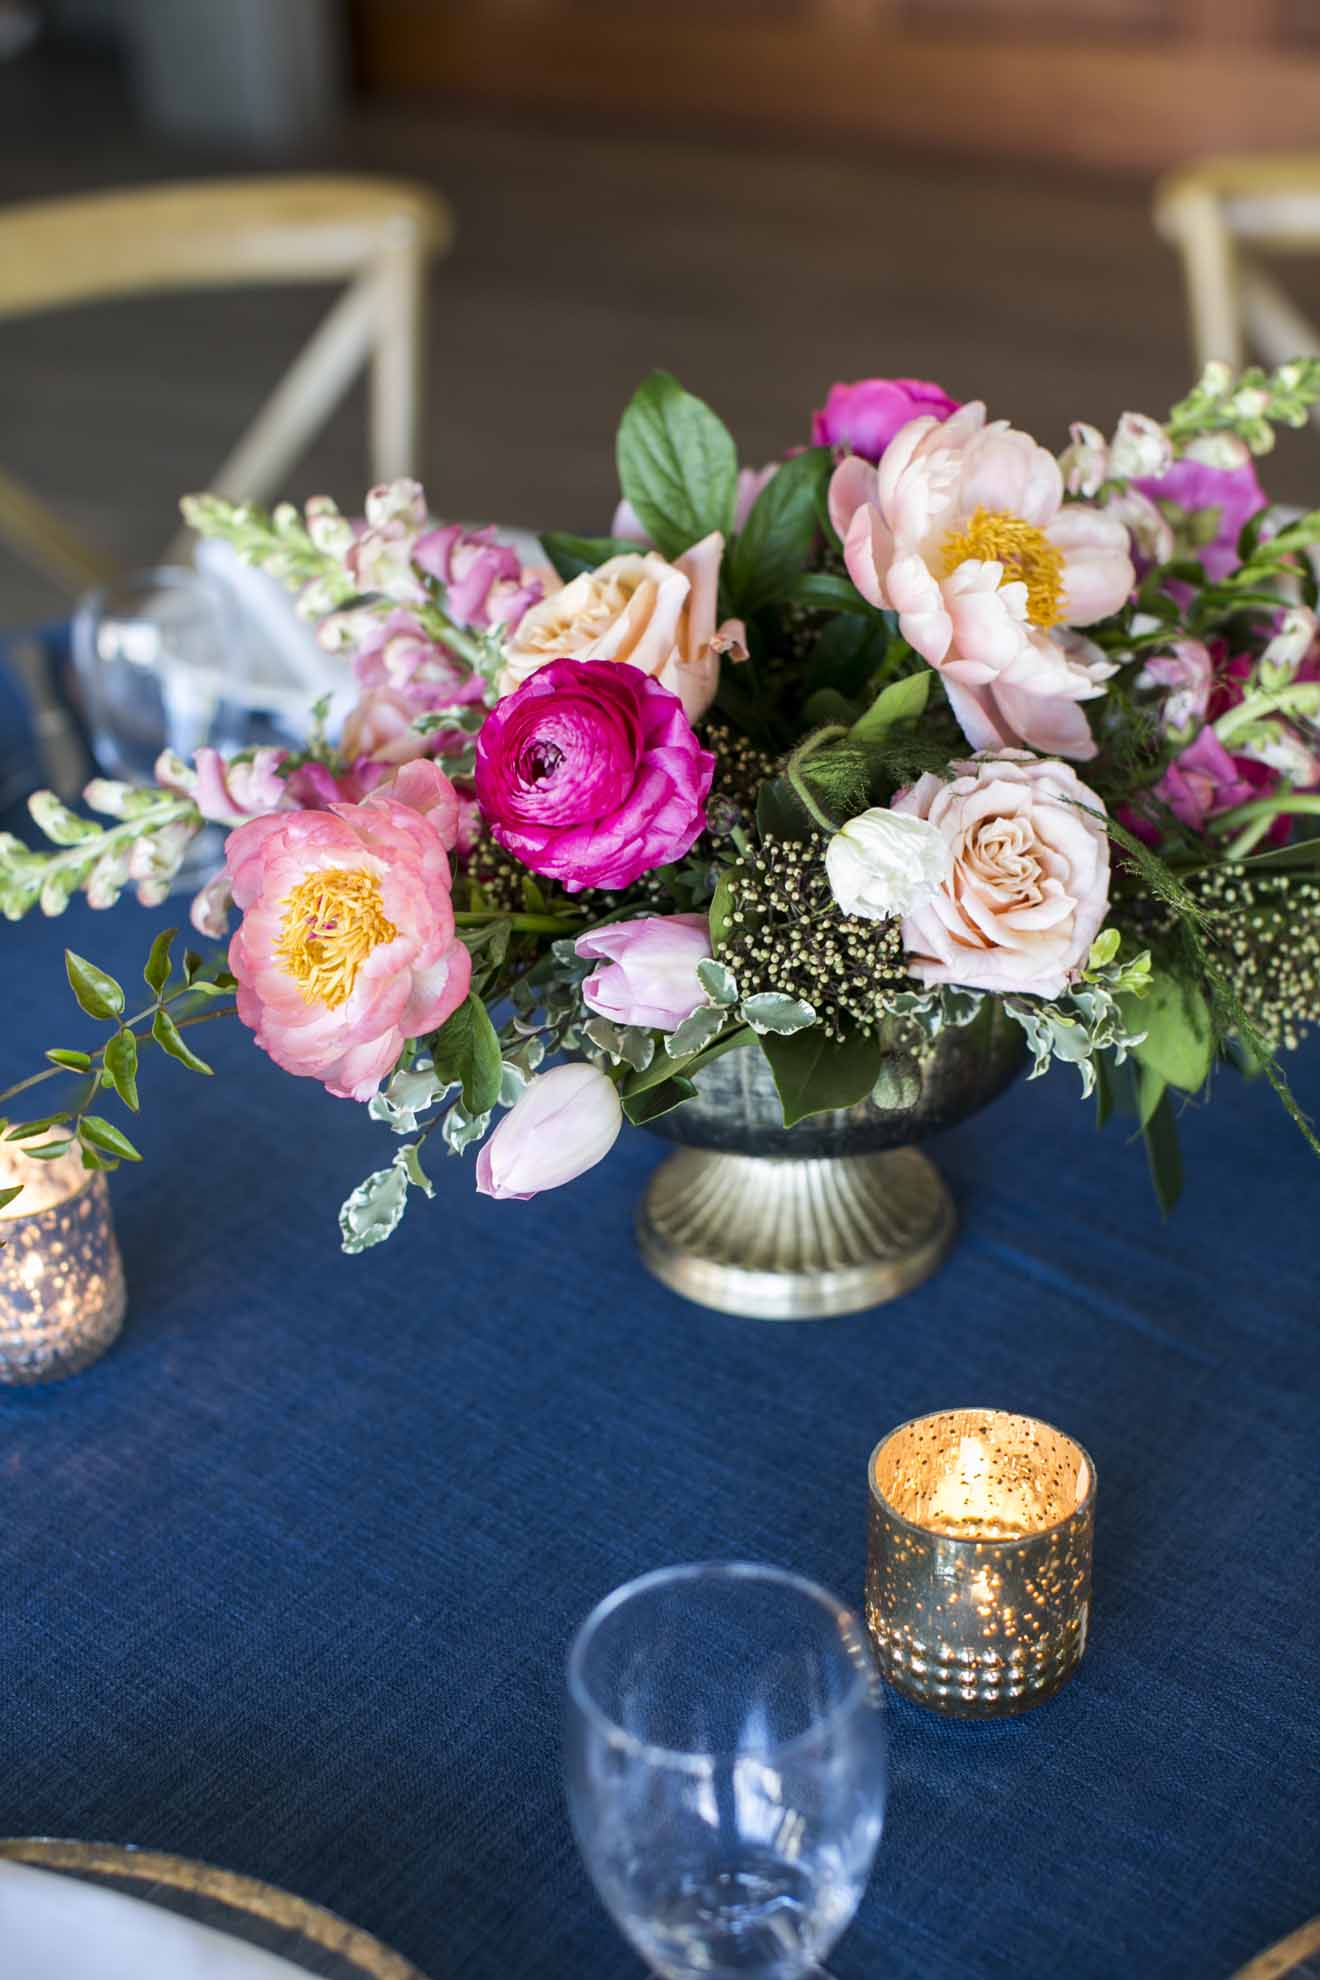 Hot pink and peach wedding centerpiece on dark blue linen with gold compote and gold votive candle - Seattle Wedding Flowers by Flora Nova Design; Hot pink and peach wedding at Roche Harbor Resort